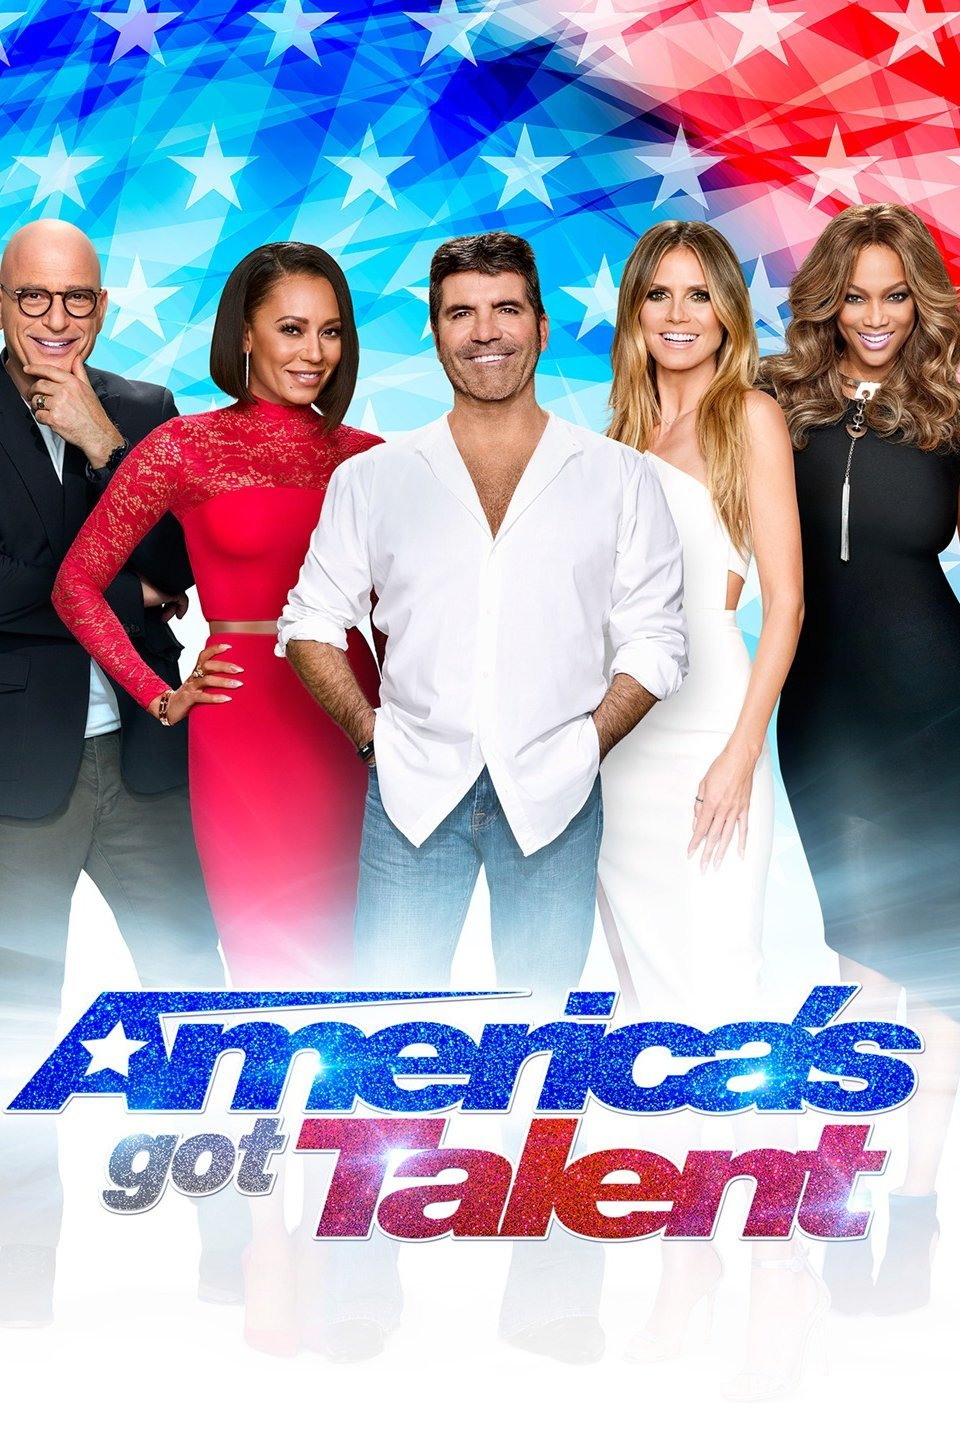 Americas Got Talent Season 12 Episode 13 HDTV Micromkv